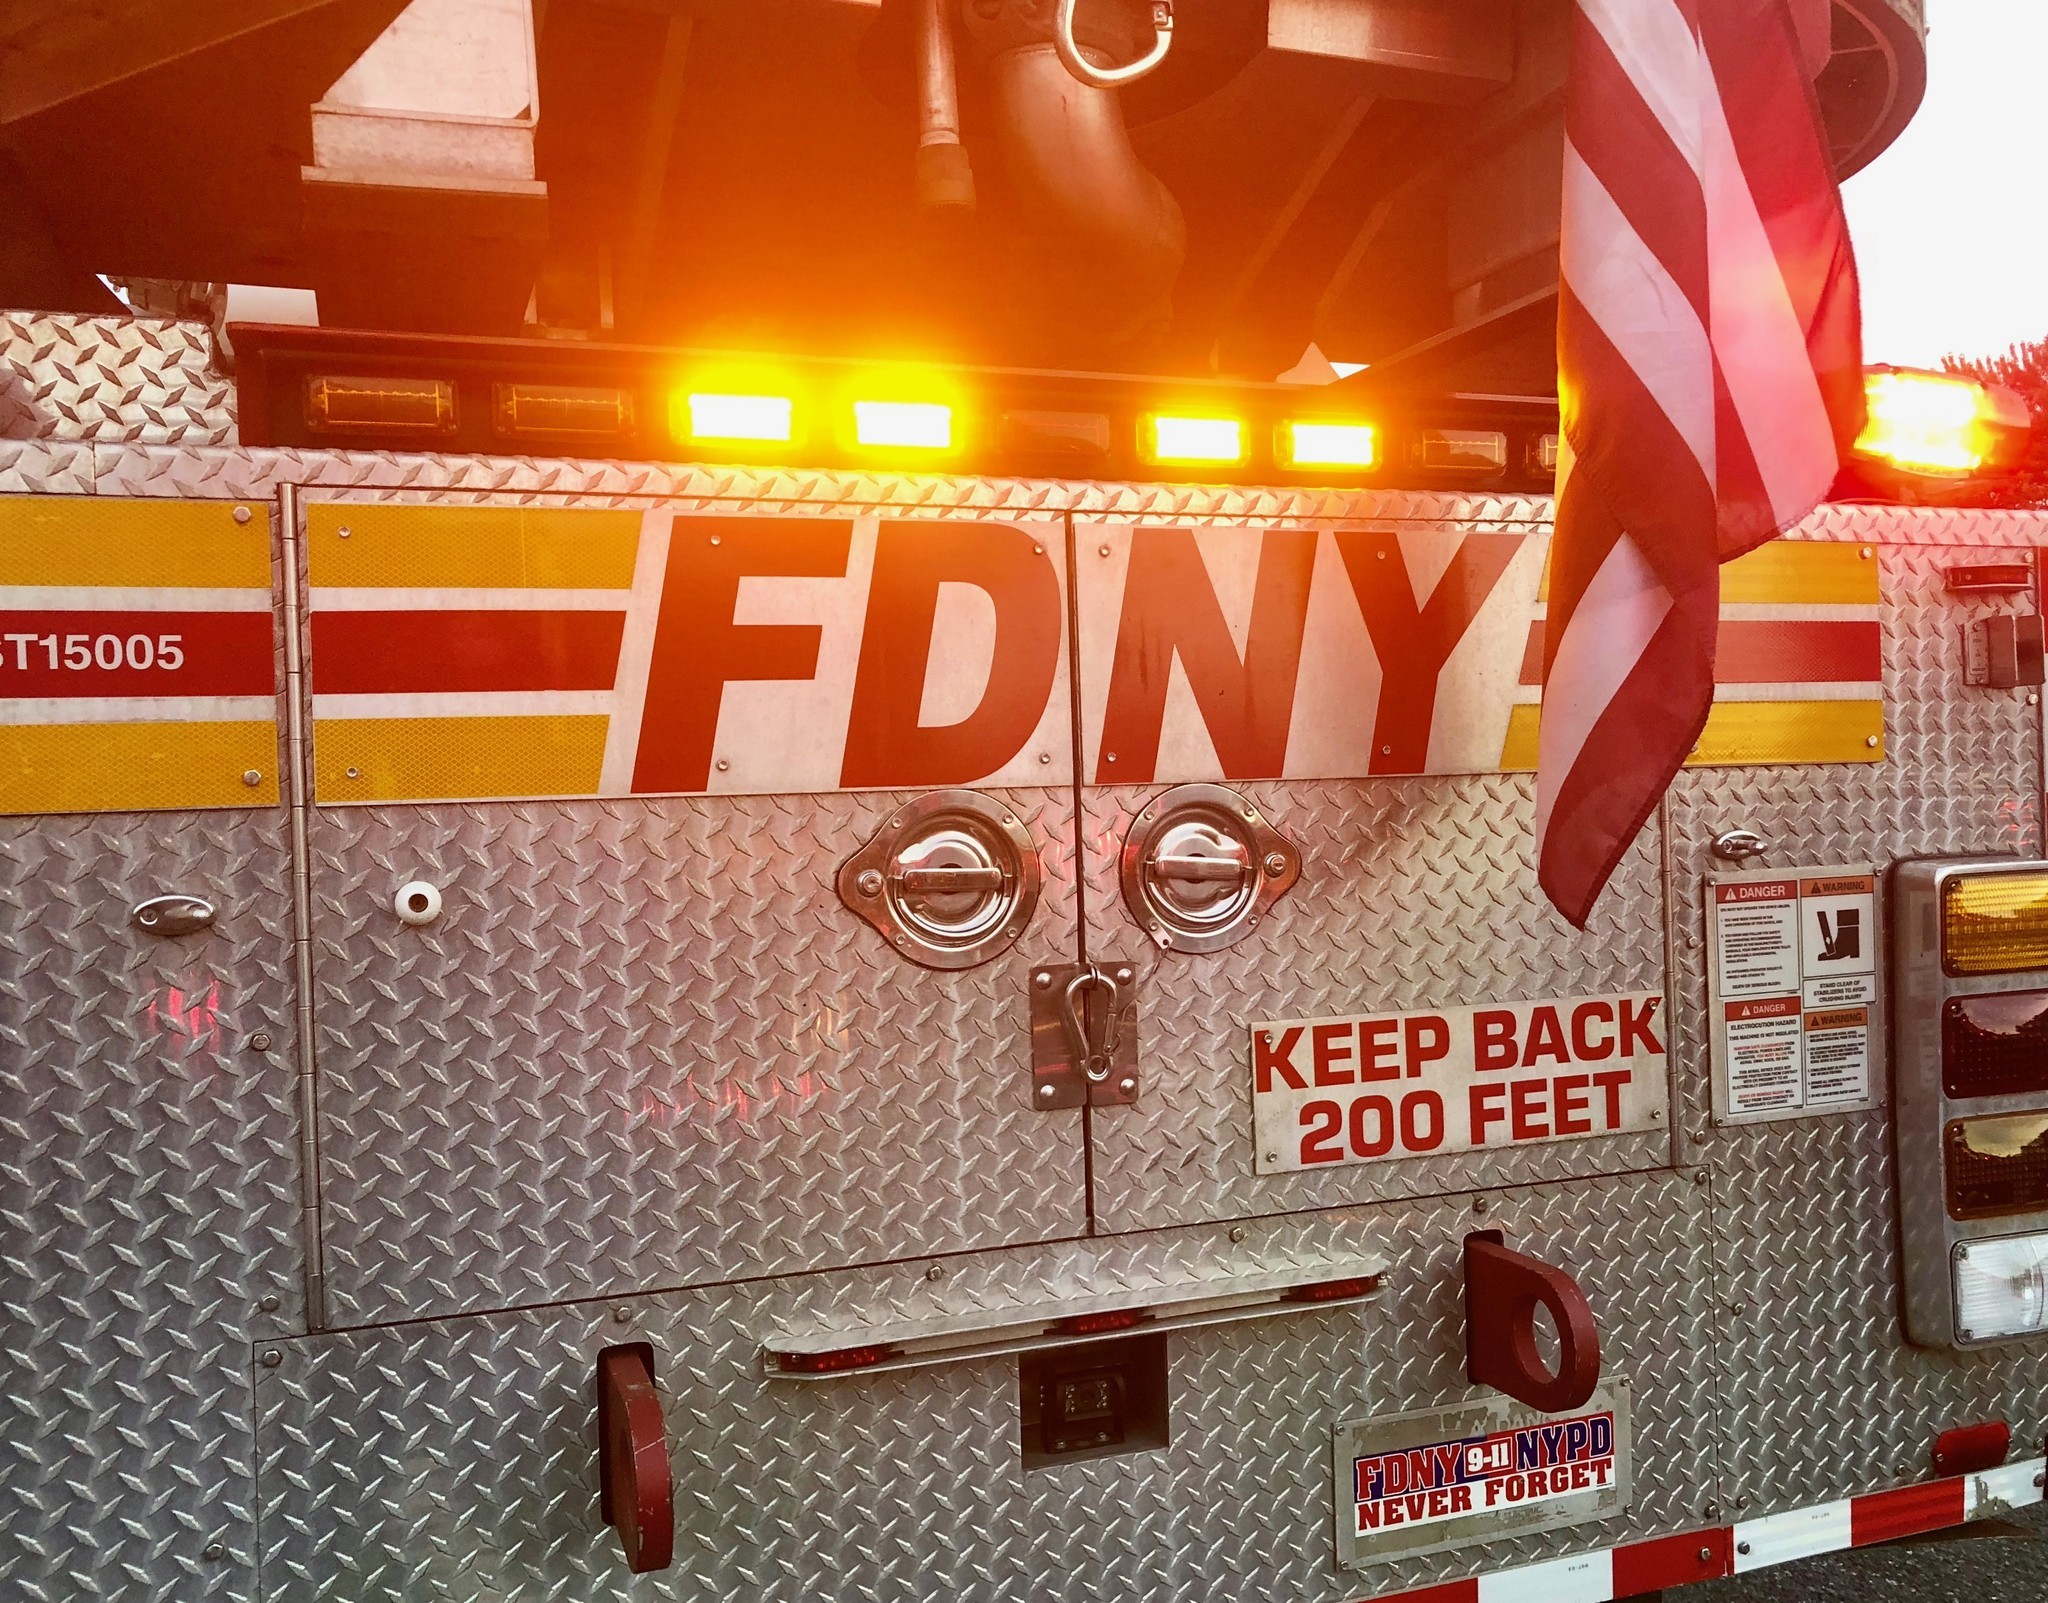 NYPD cop, FDNY firefighter busted in separate incidents of domestic violence